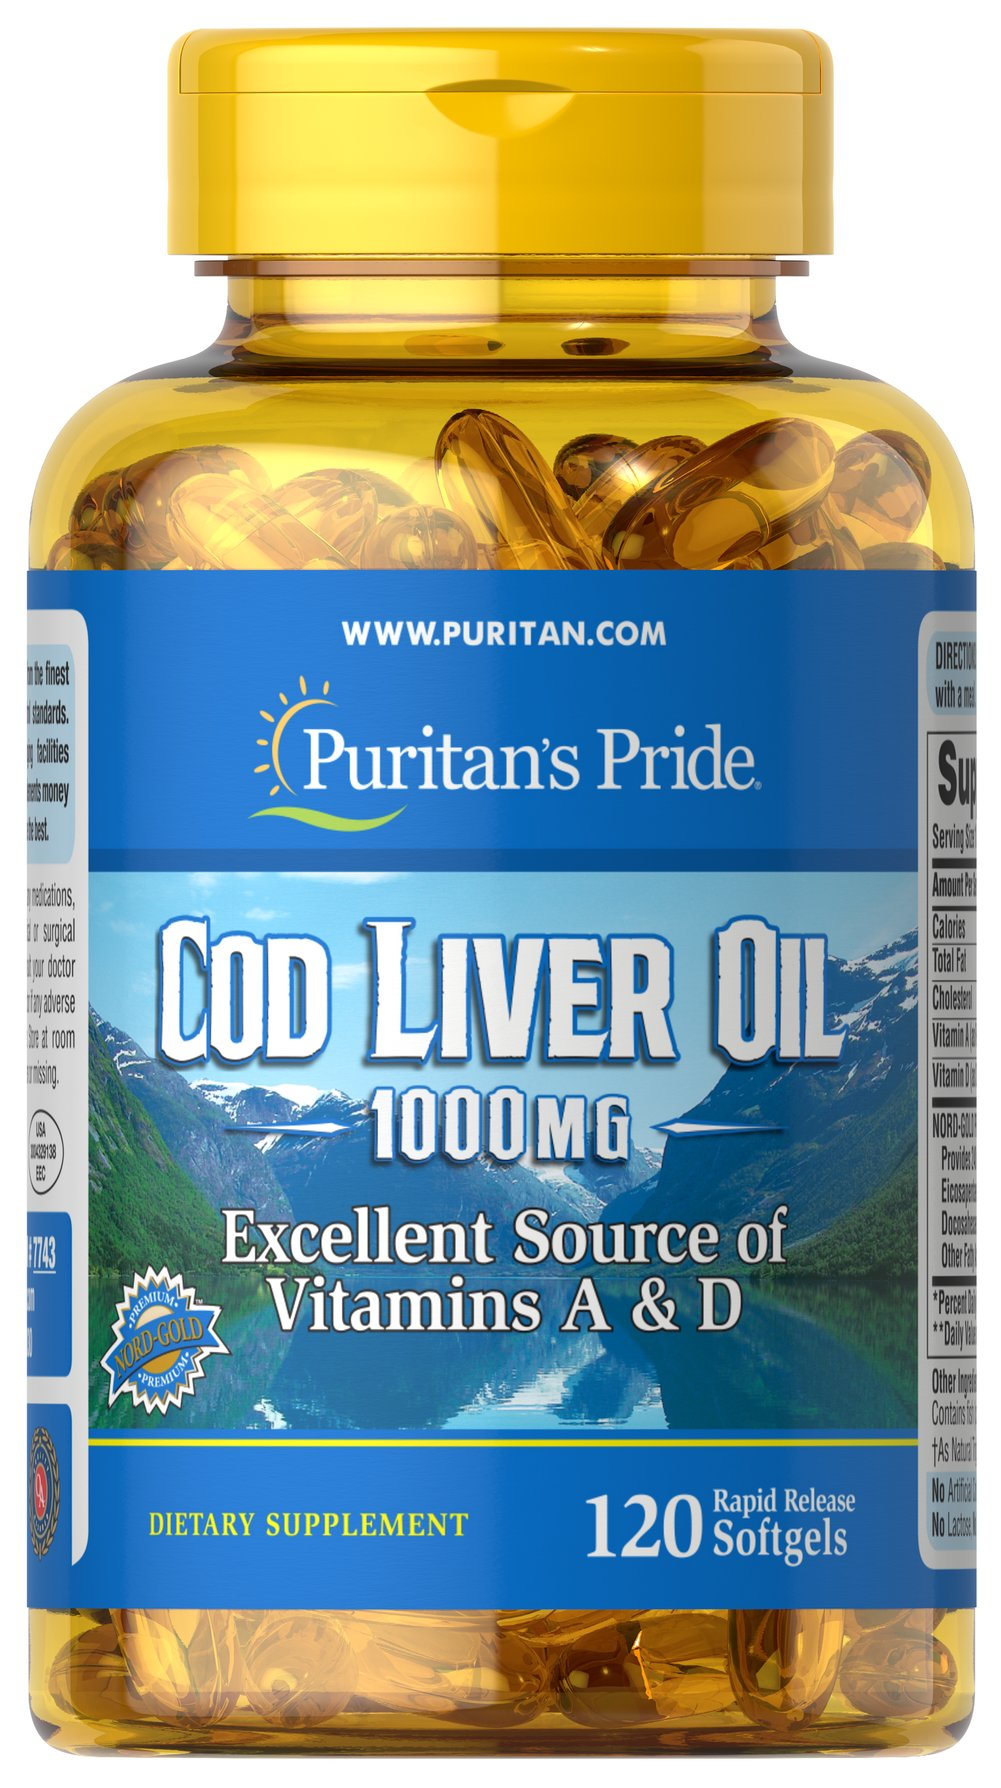 Cod Liver Oil 1000 mg <p>Norwegian cod has traditionally been one of the most popular natural sources of  <b>both Vitamins A & D</b>. </p> <p>Vitamin D helps maintain healthy bones in adults. ** </p>  <p>Vitamin A helps maintain eye health. **</p>  <p>Vitamins A & D help regulate the immune system.**</p>  120 Softgels 1000 mg $22.59